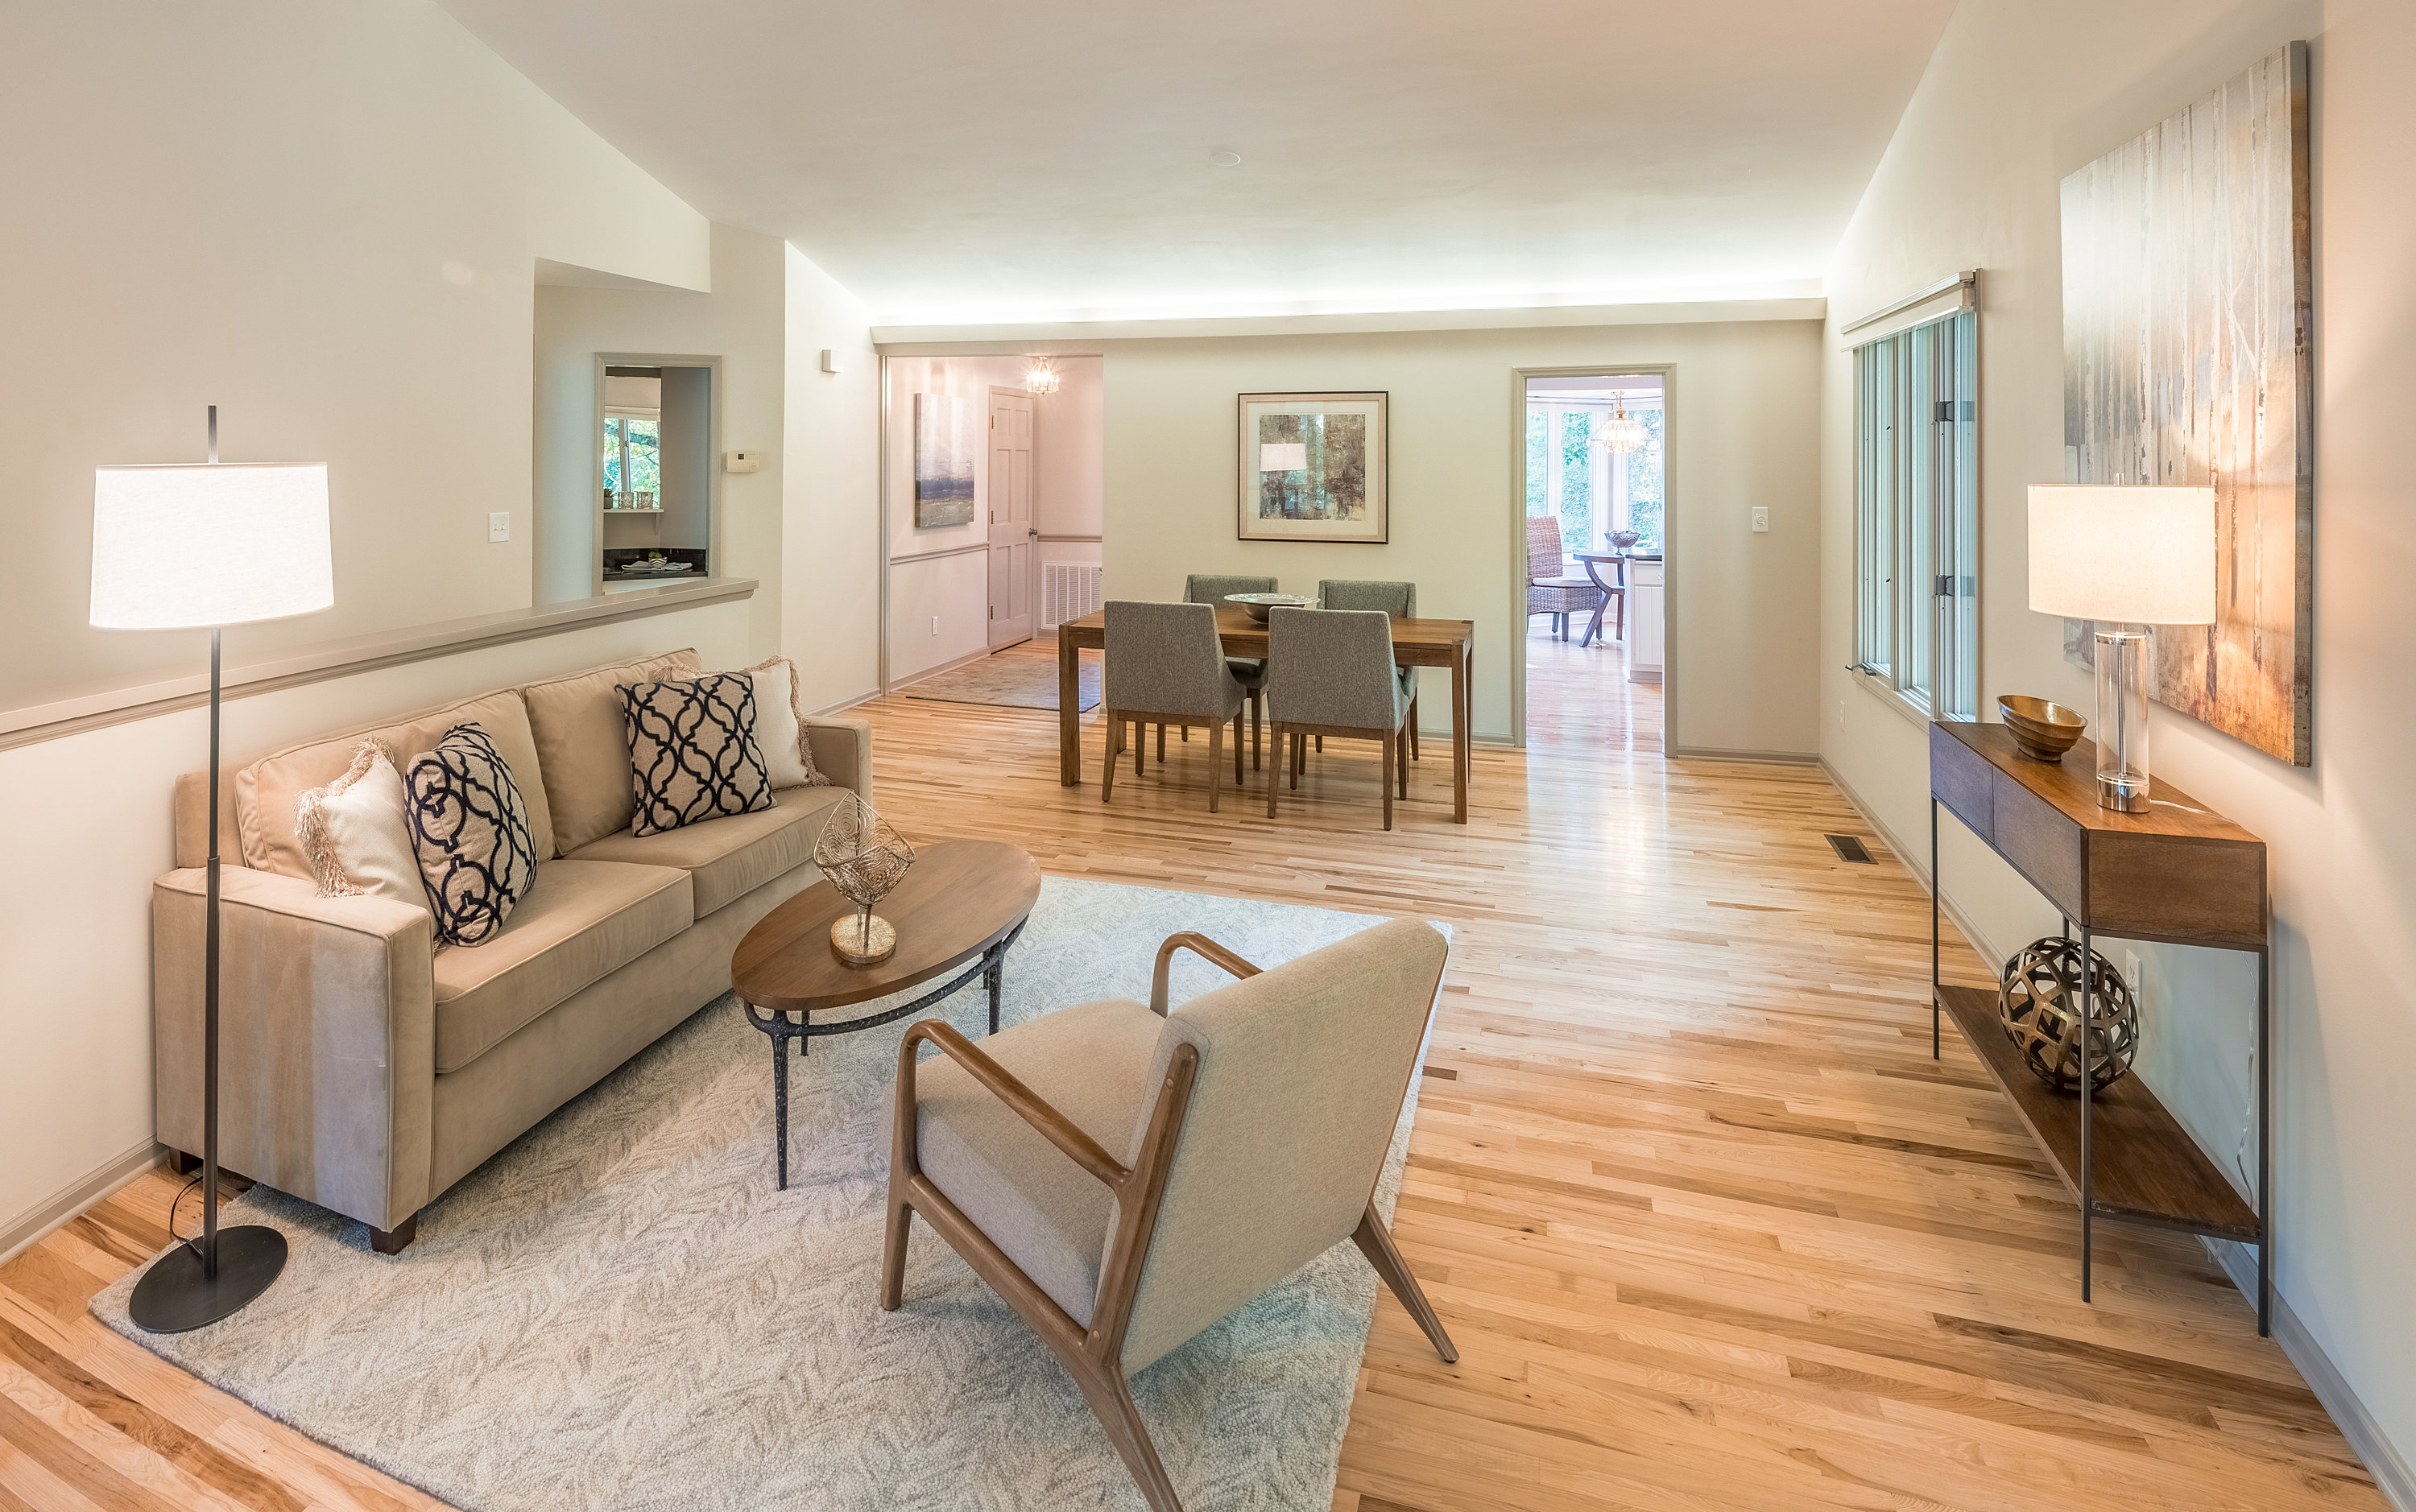 a new day design home staging - Home Staging Design